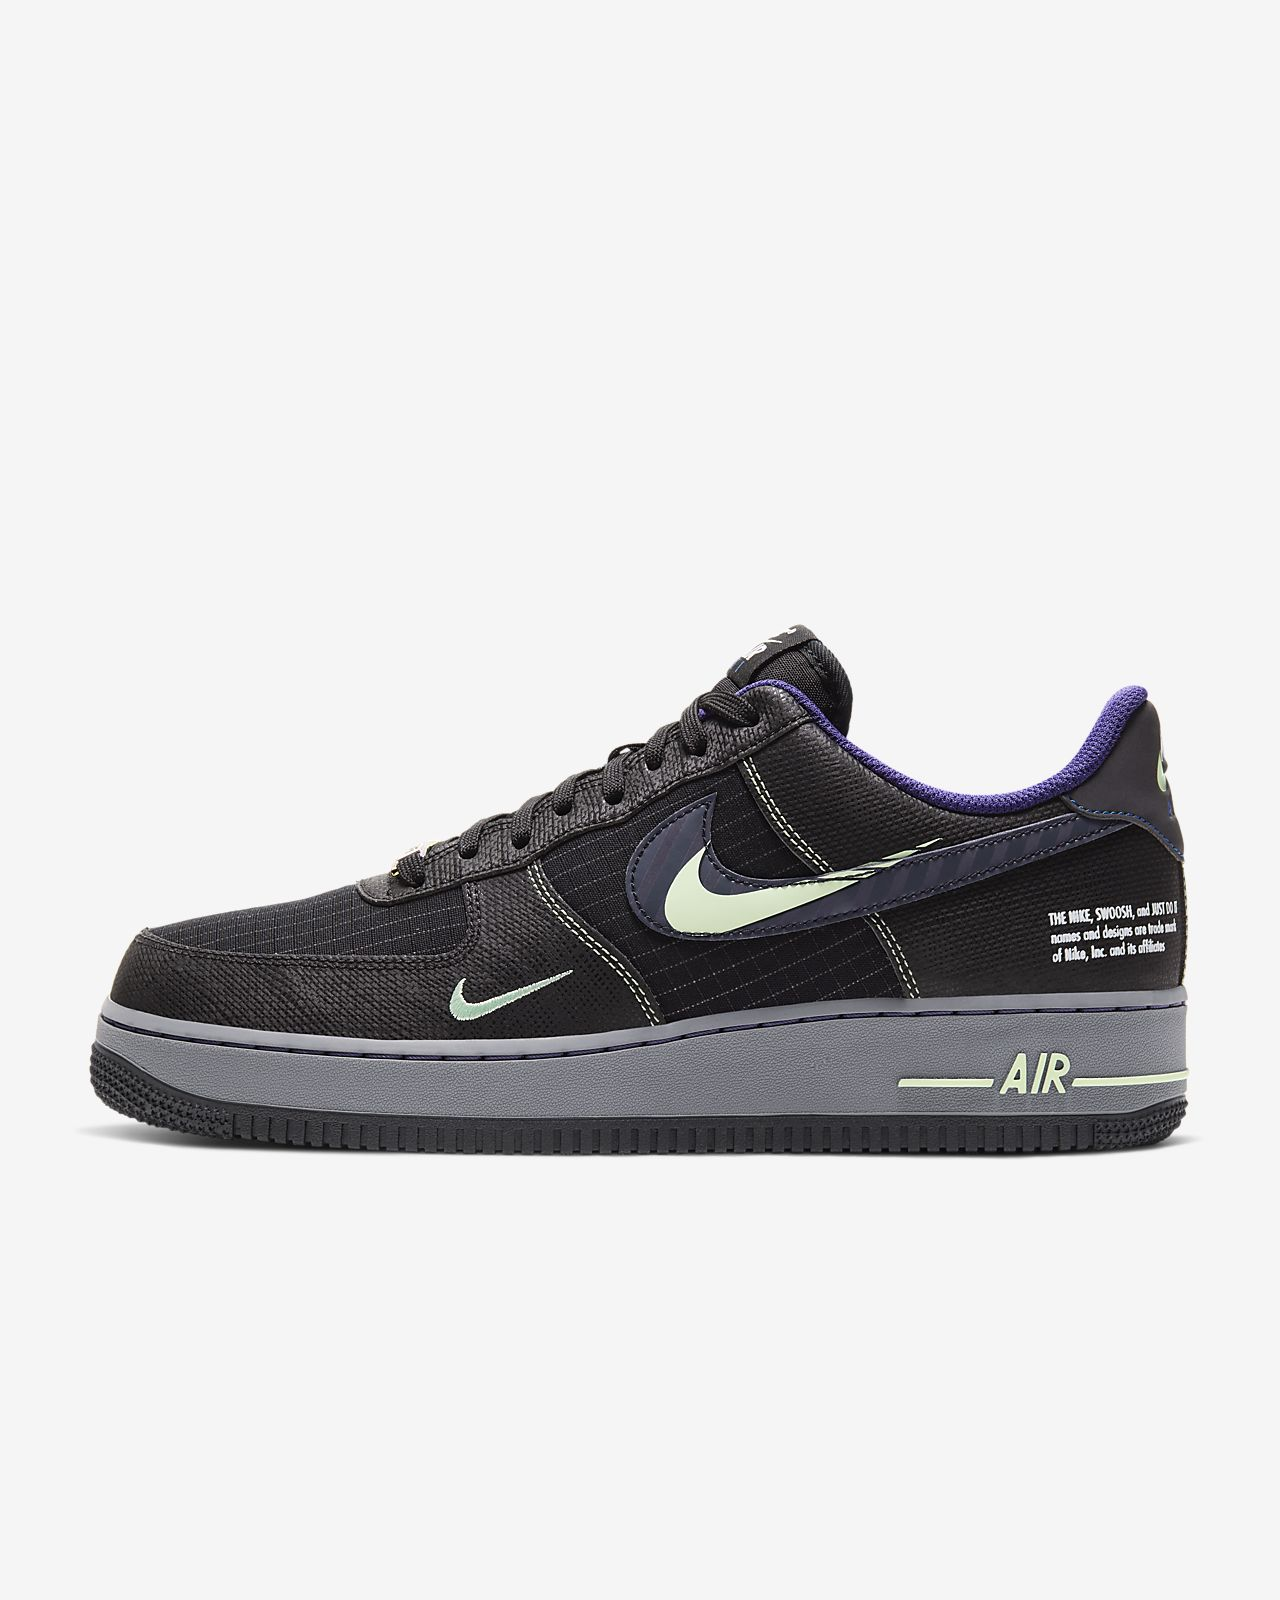 air force 1 uomo lv8 07